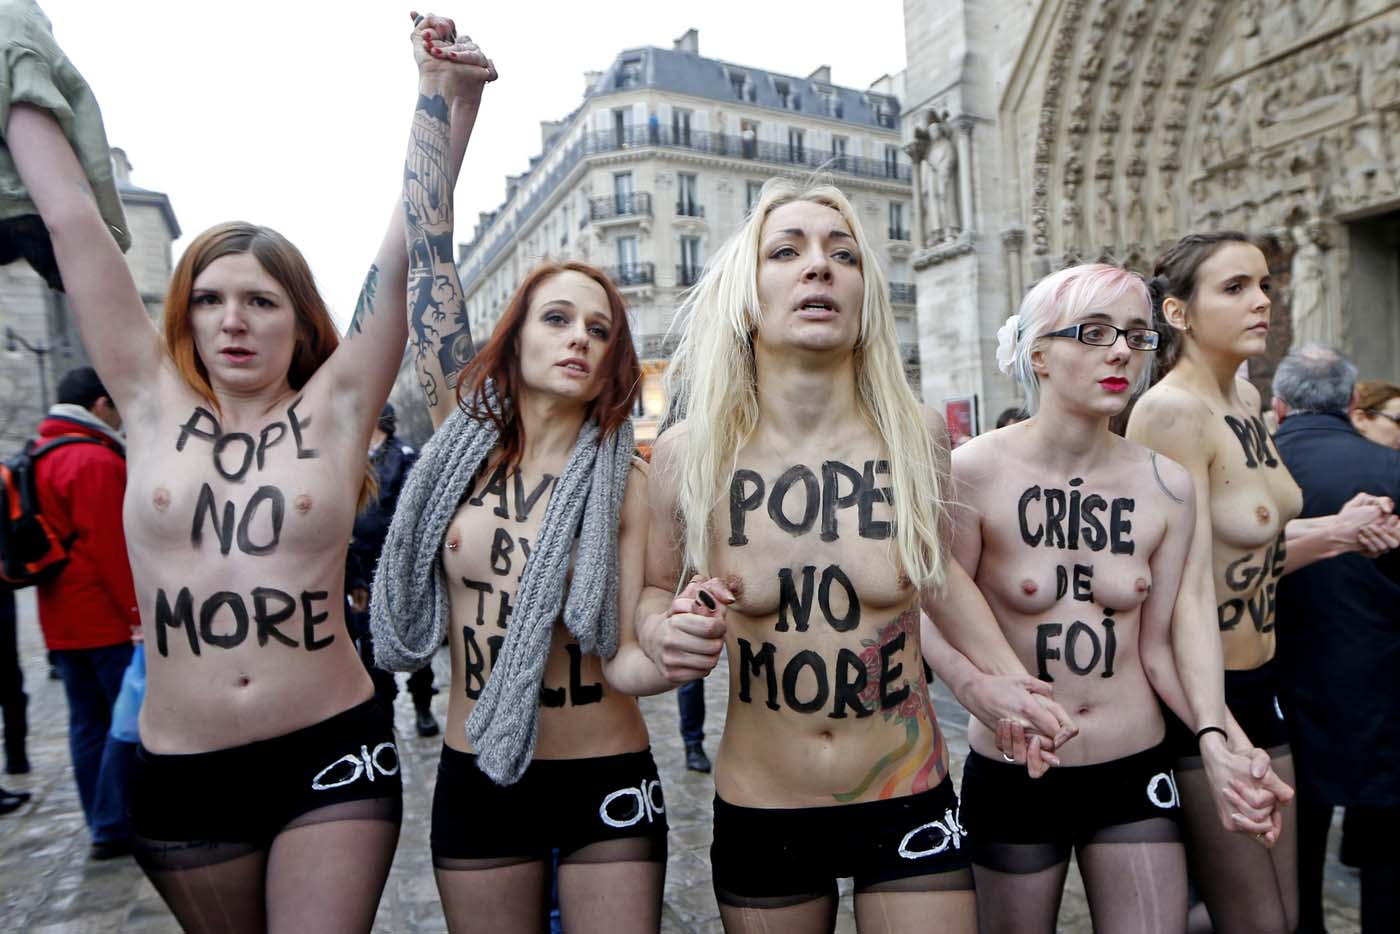 Activists from the women's rights organisation Femen leave Notre-Dame de Paris Cathedral after a protest in Paris